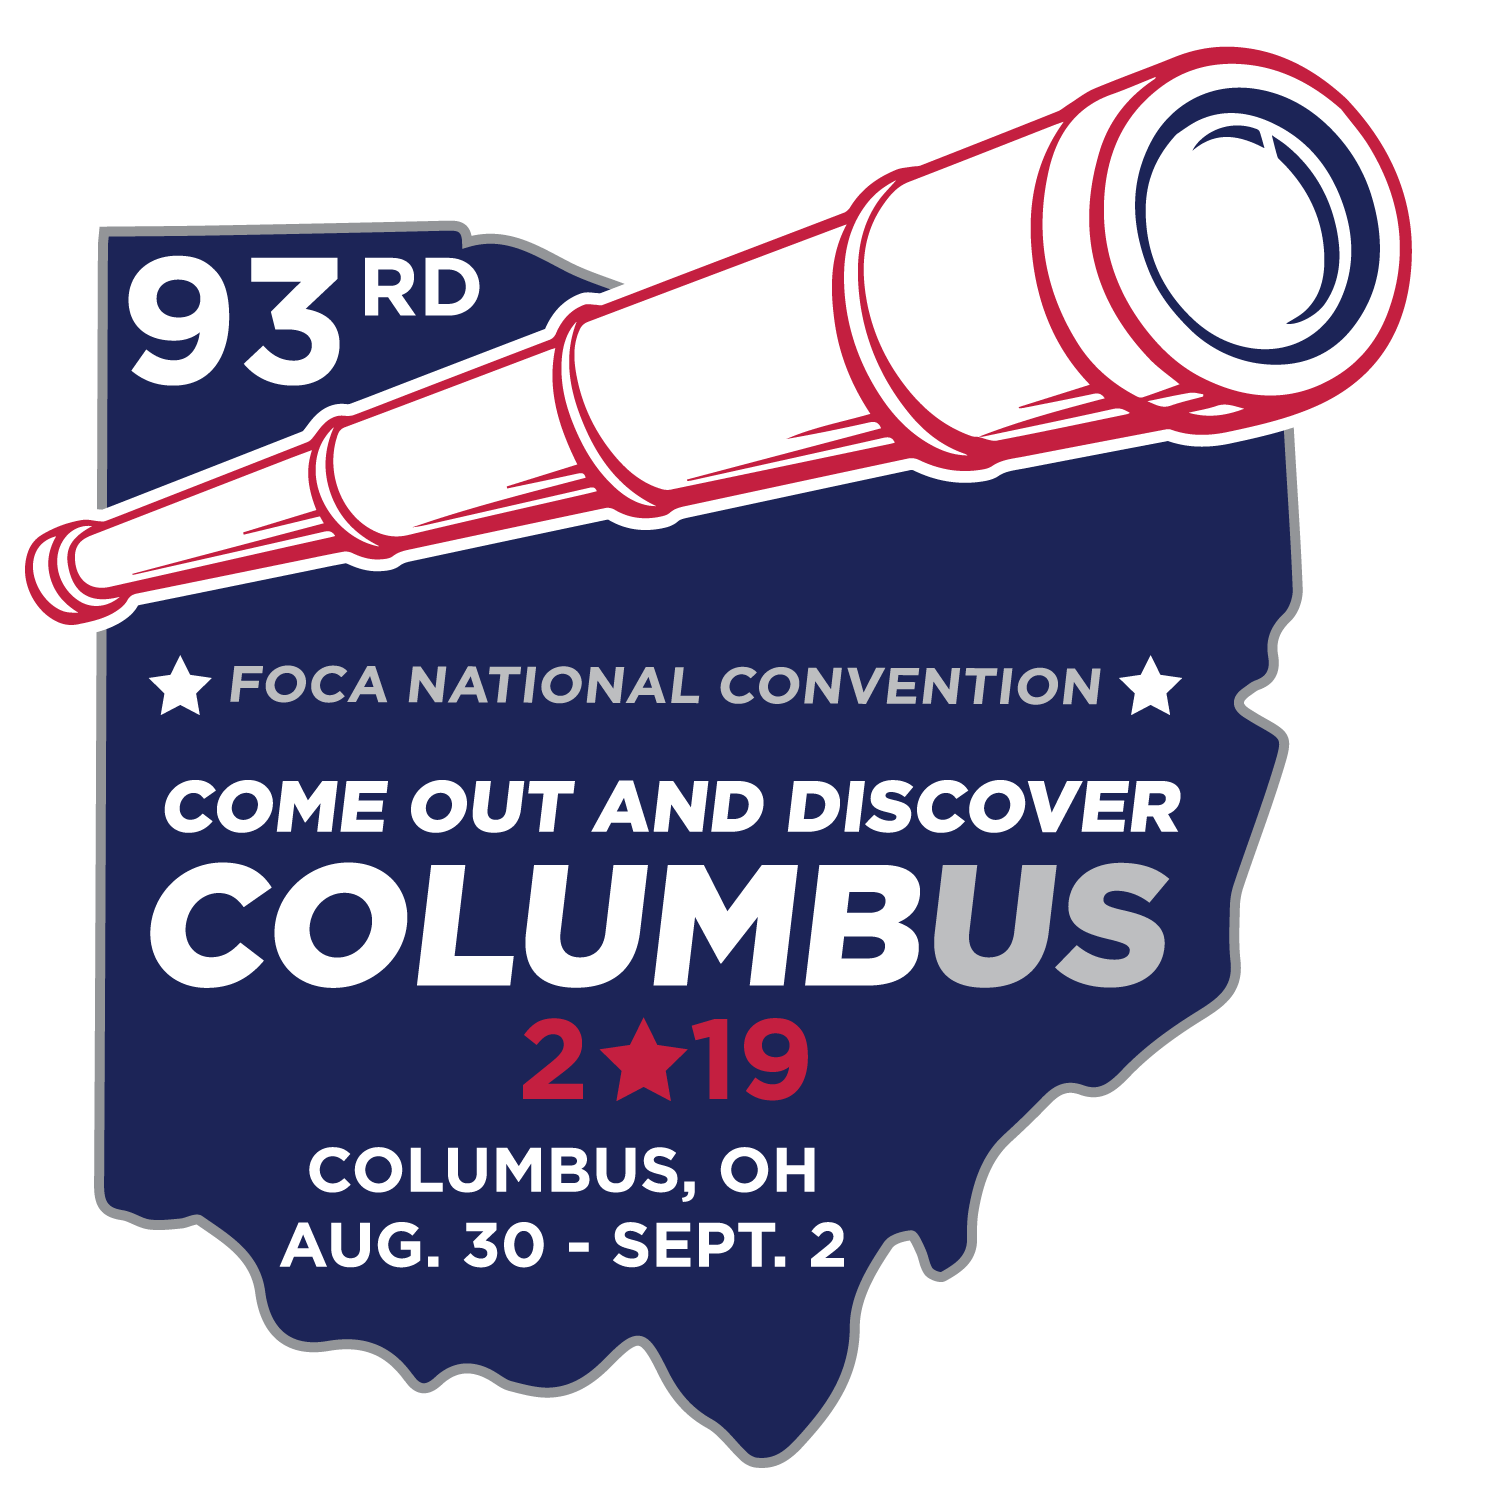 93ConventionLogo.png